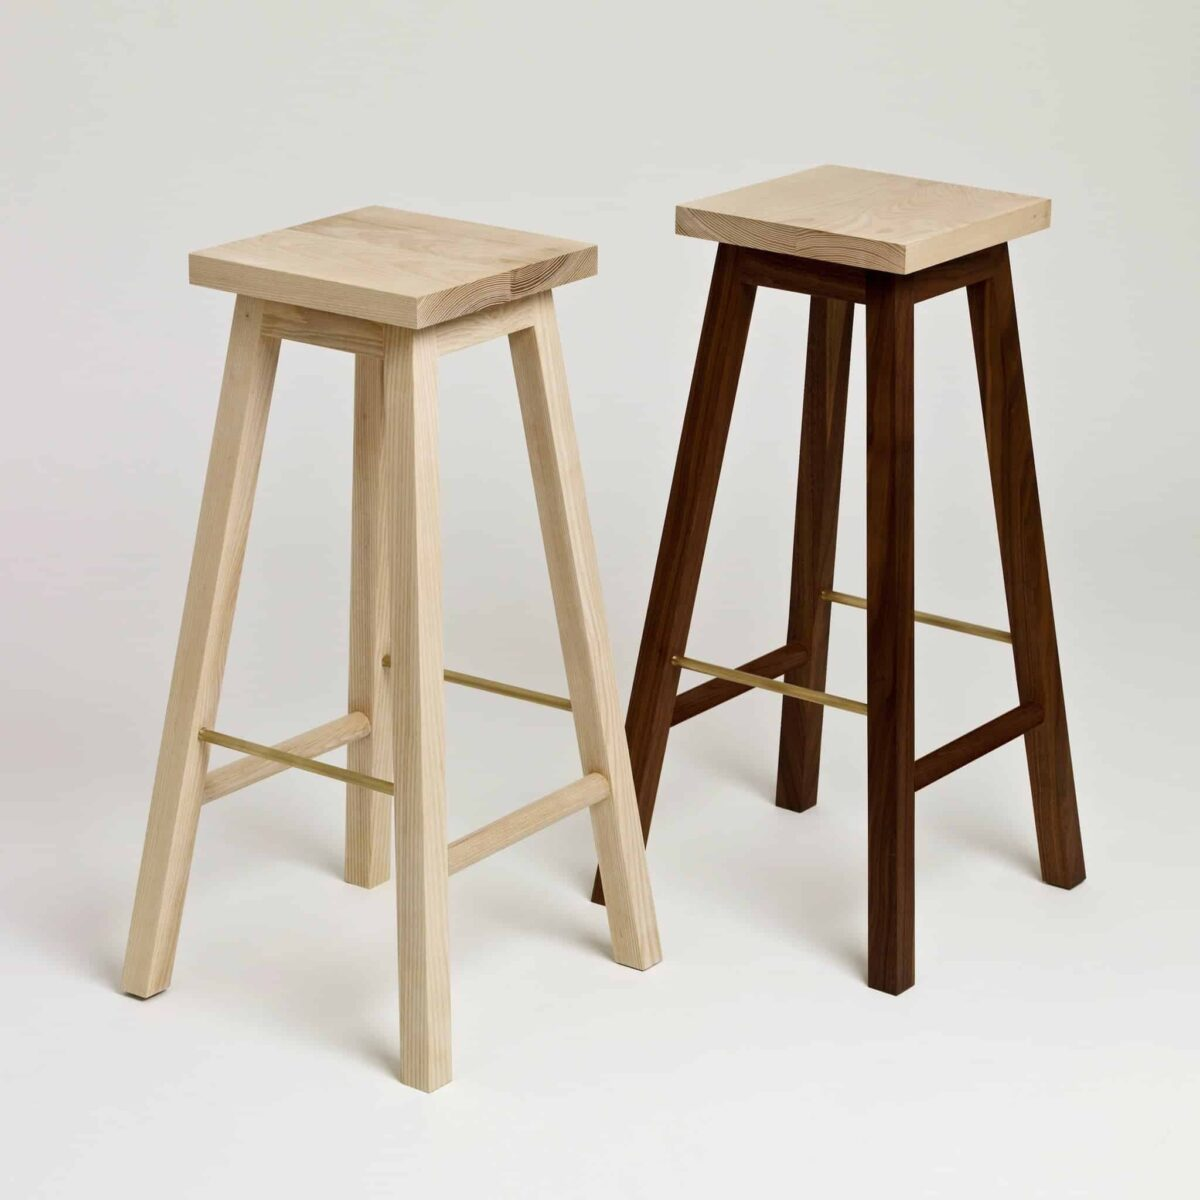 another-country-bar-stool-two-002_48f674bb-6115-4132-b700-0789b0af3c85